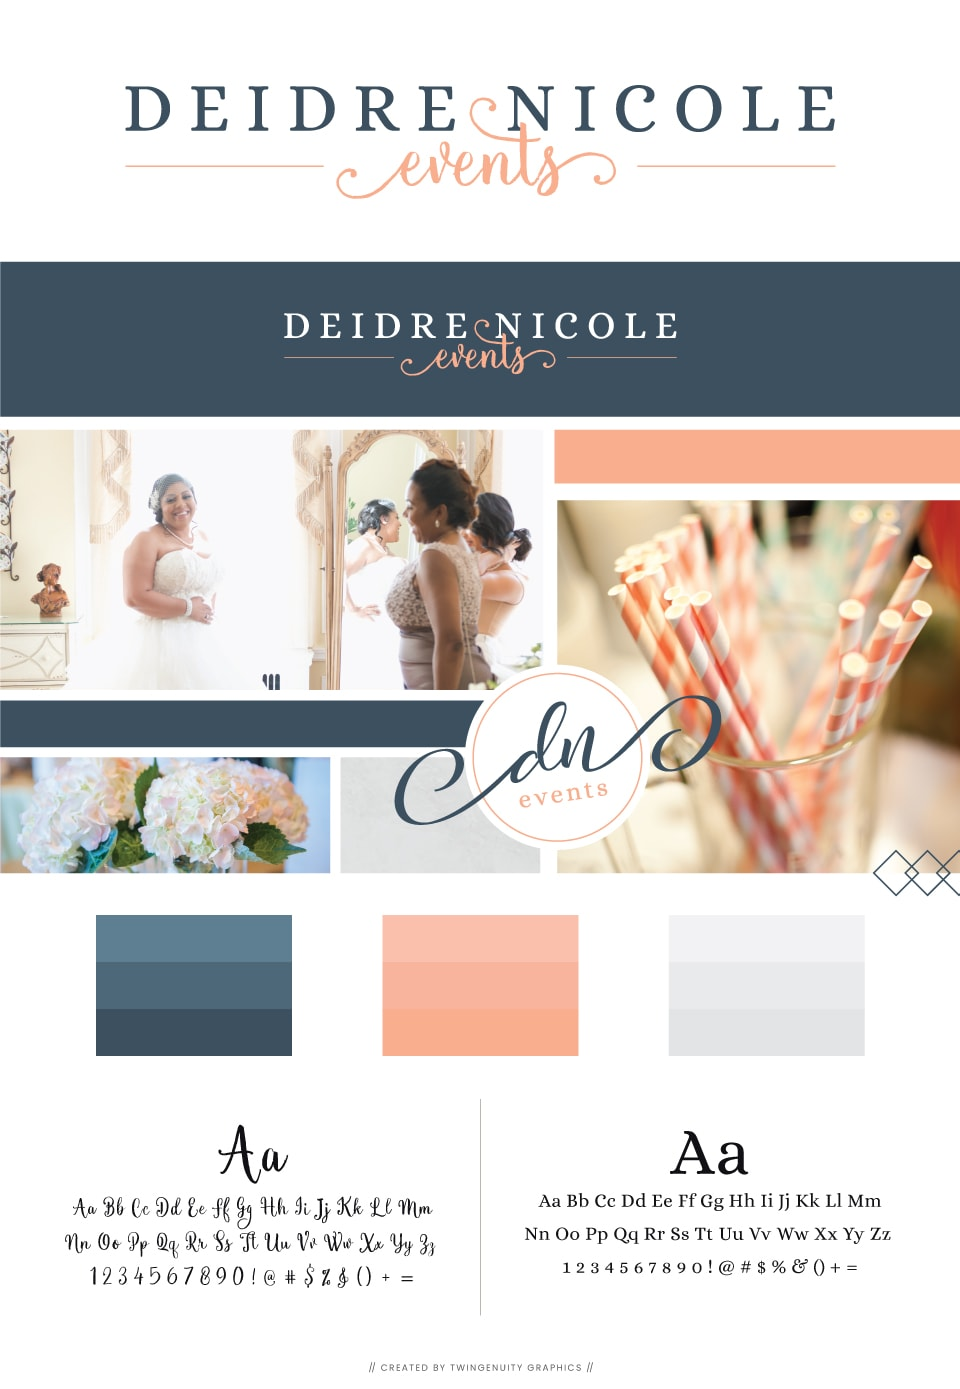 deidre nicole logo design and branding